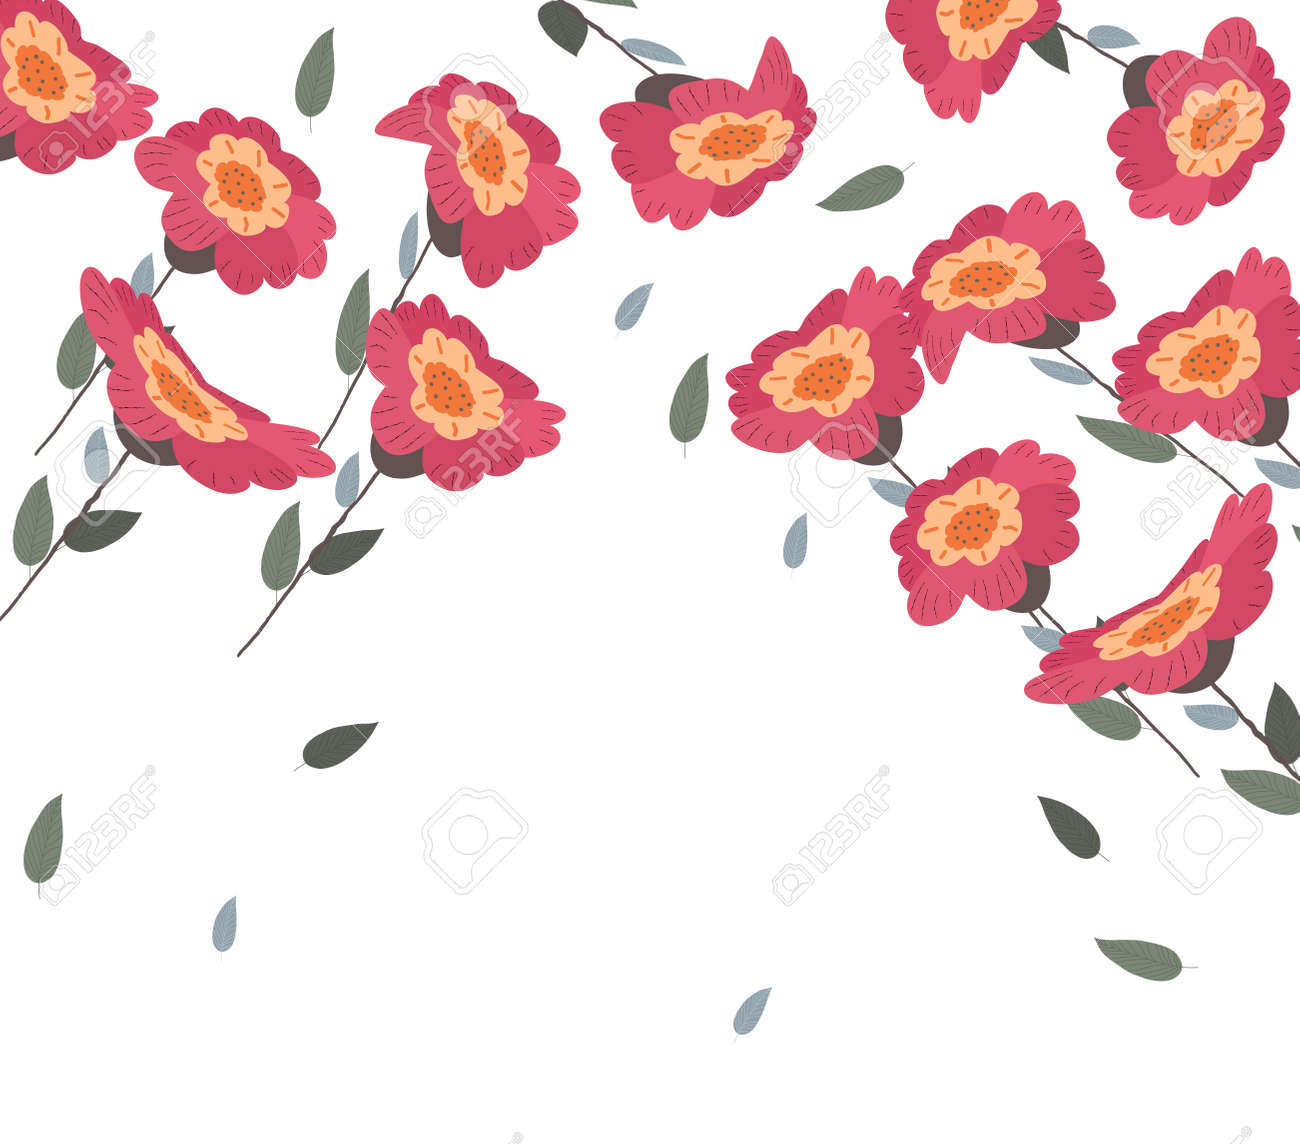 Springs flowers and floral background on white vector illustration springs flowers and floral background on white vector illustration stock vector 96279586 mightylinksfo